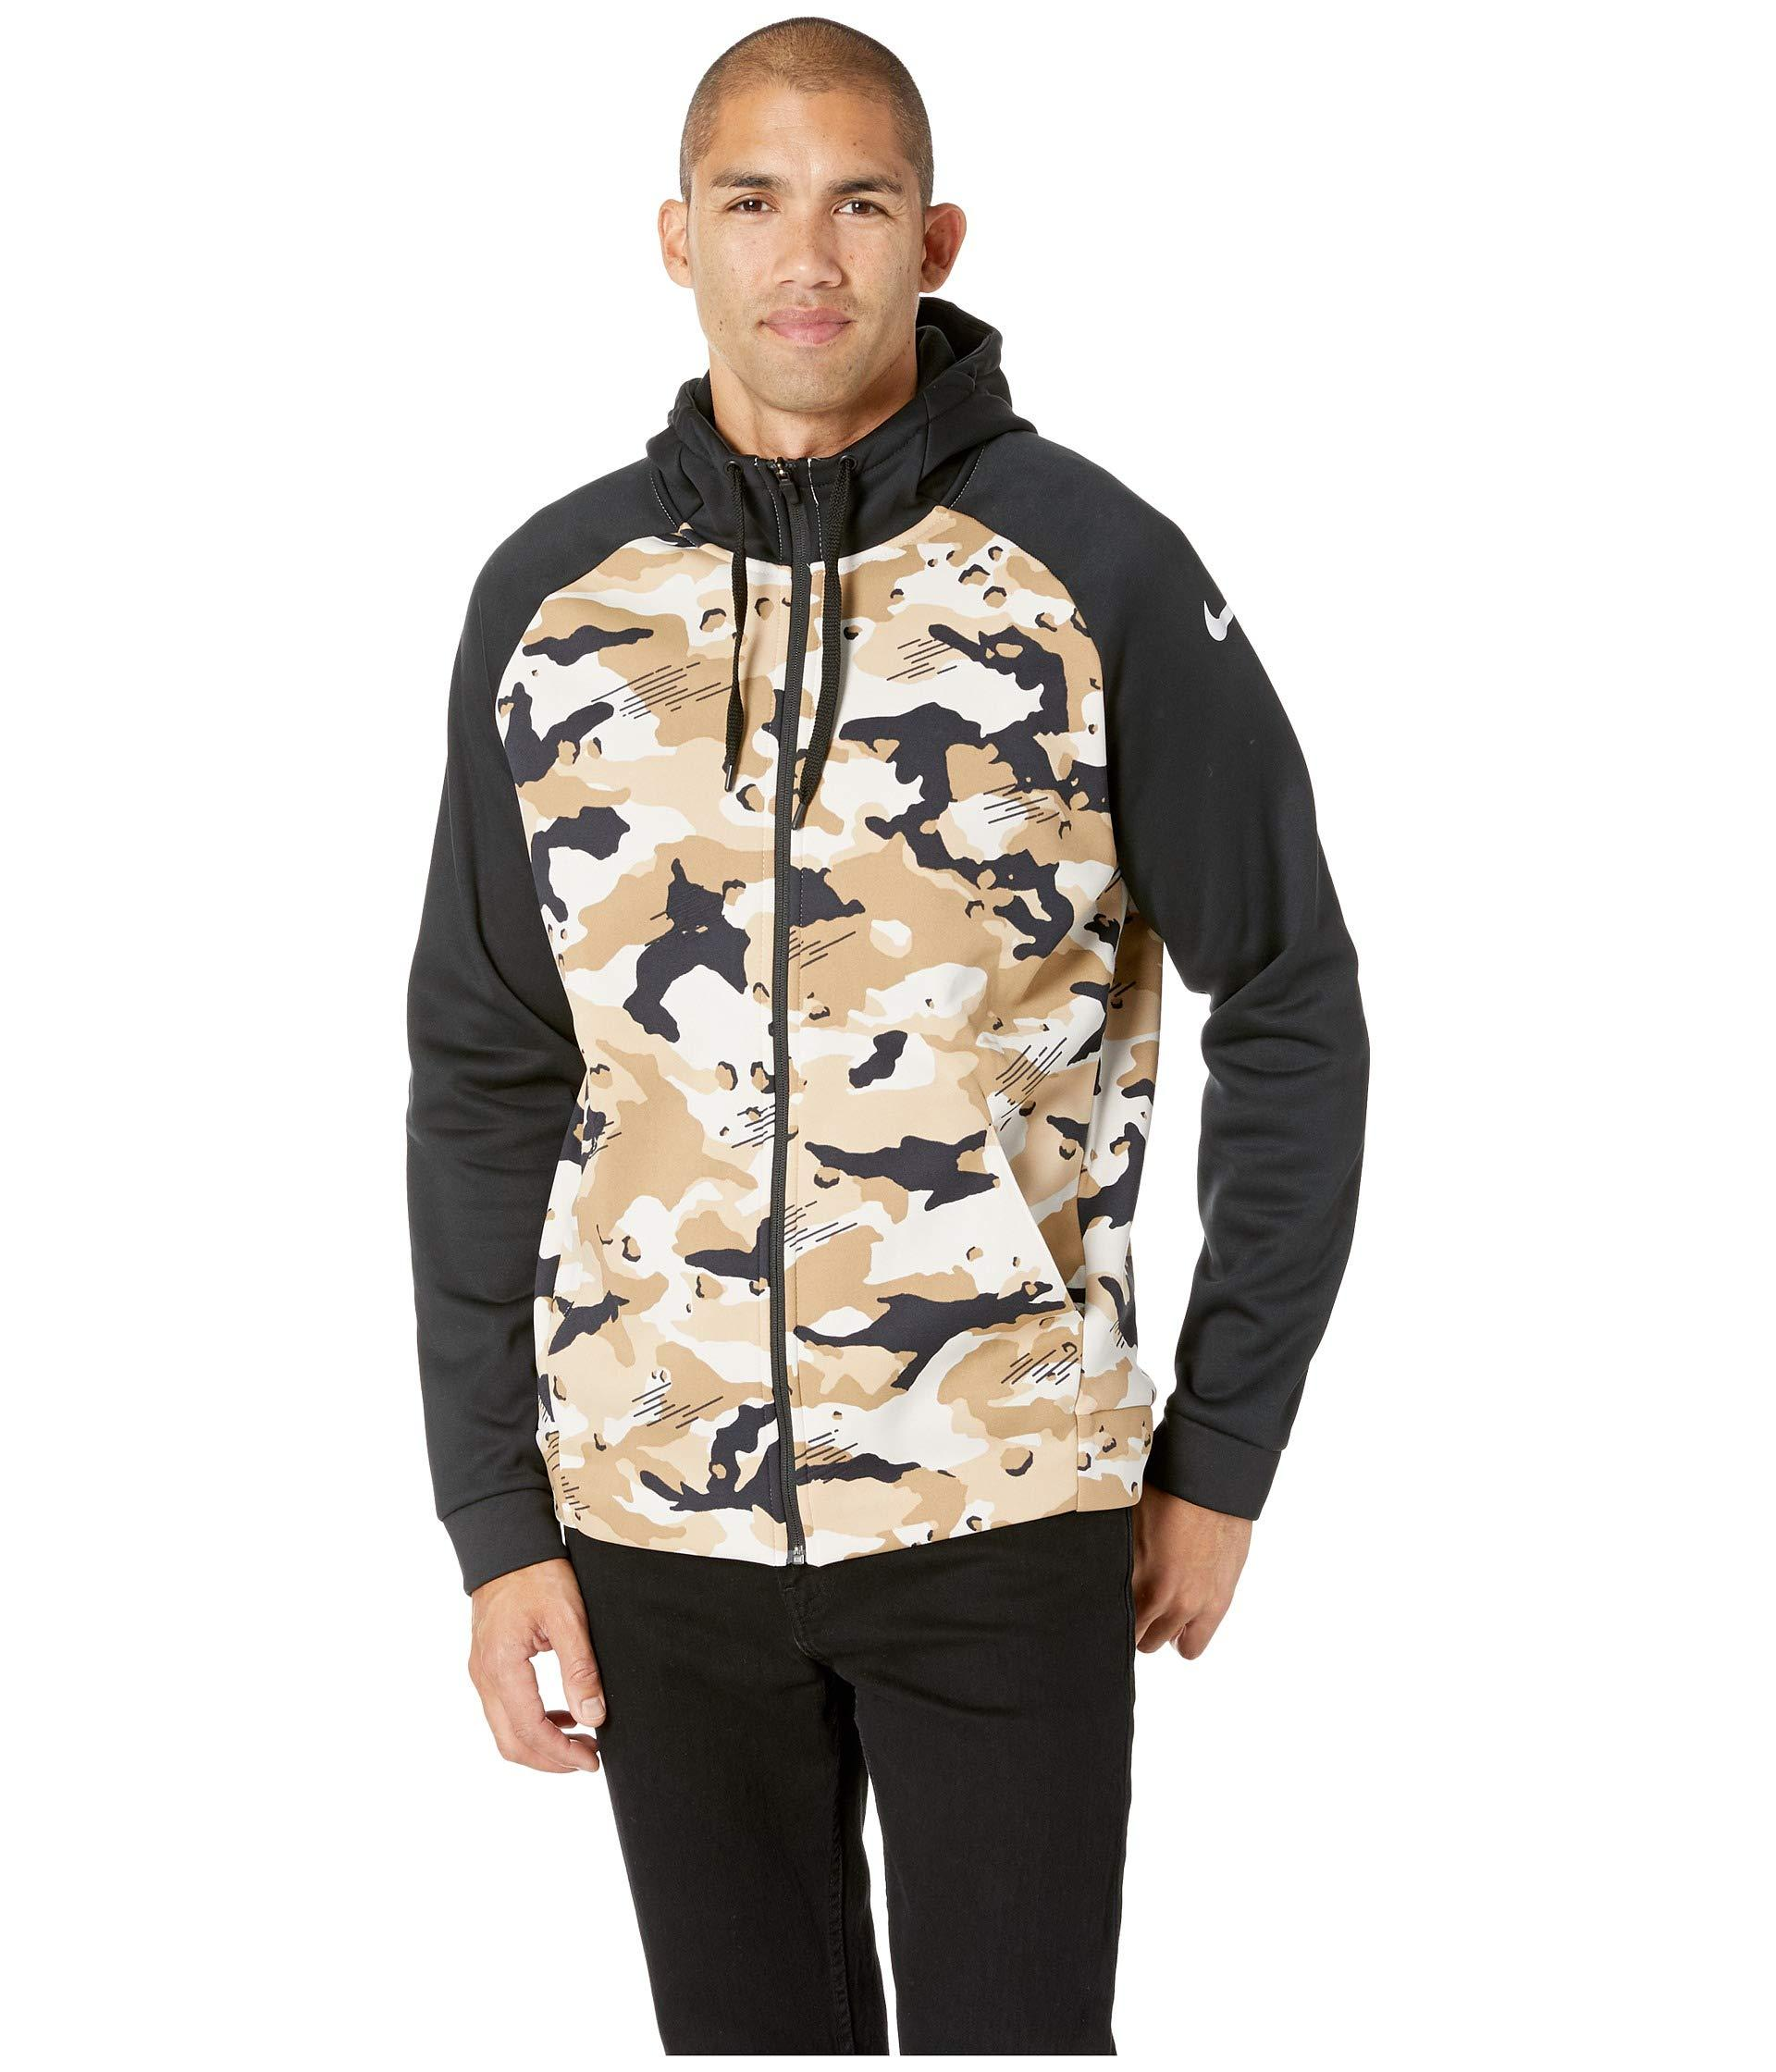 d01a4a8e404 Lyst - Nike Therma Hoodie Full Zip Camo in Black for Men - Save 24%